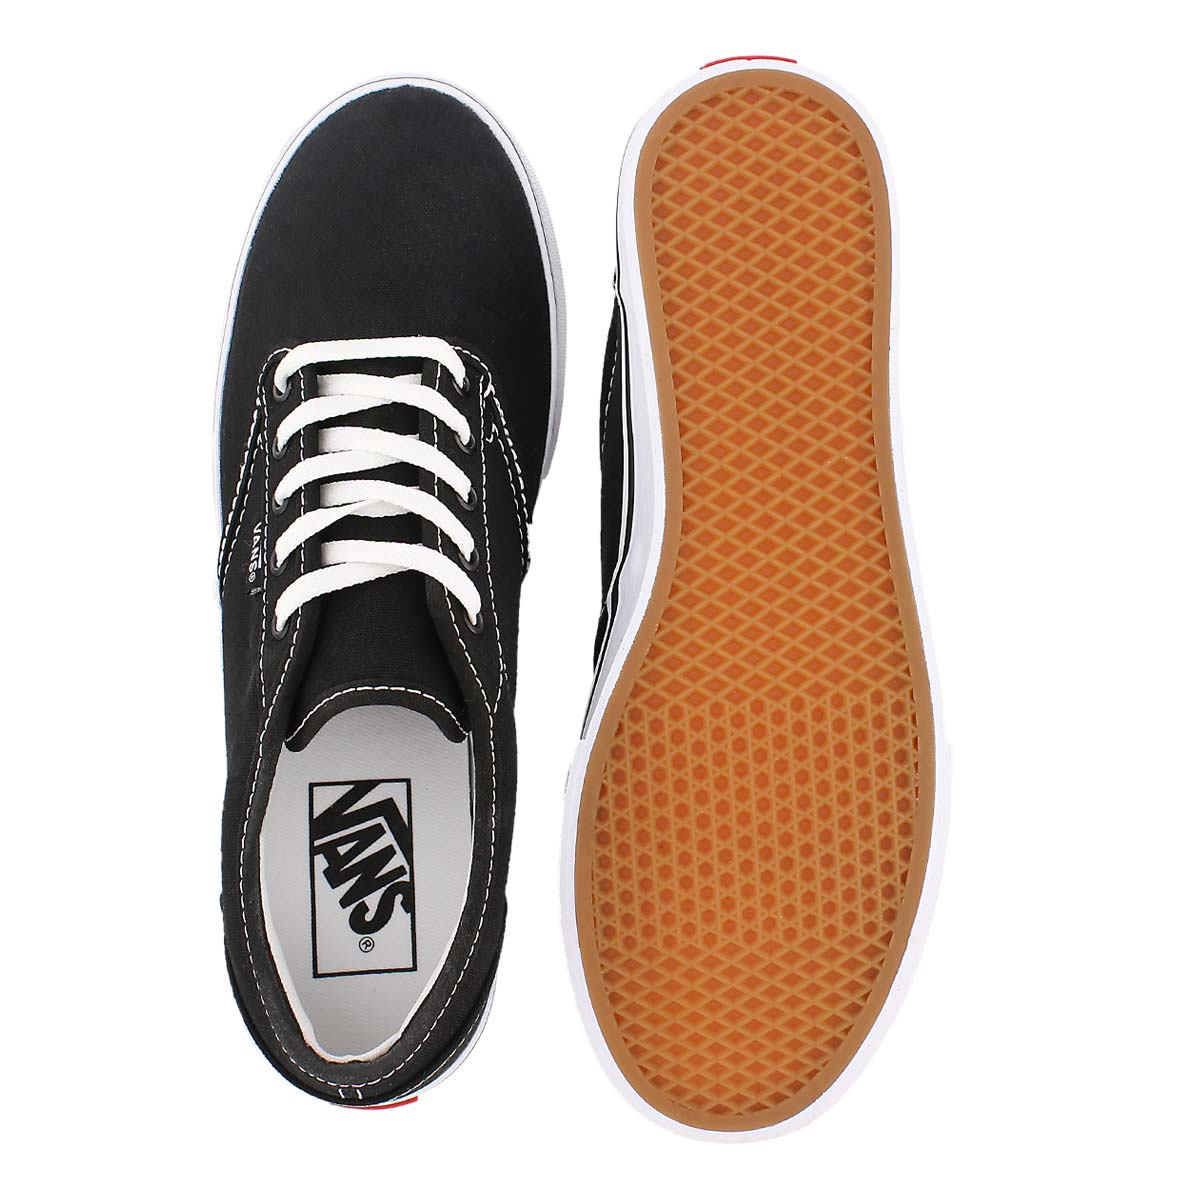 Lds Atwood Low blk/wht lace up sneaker